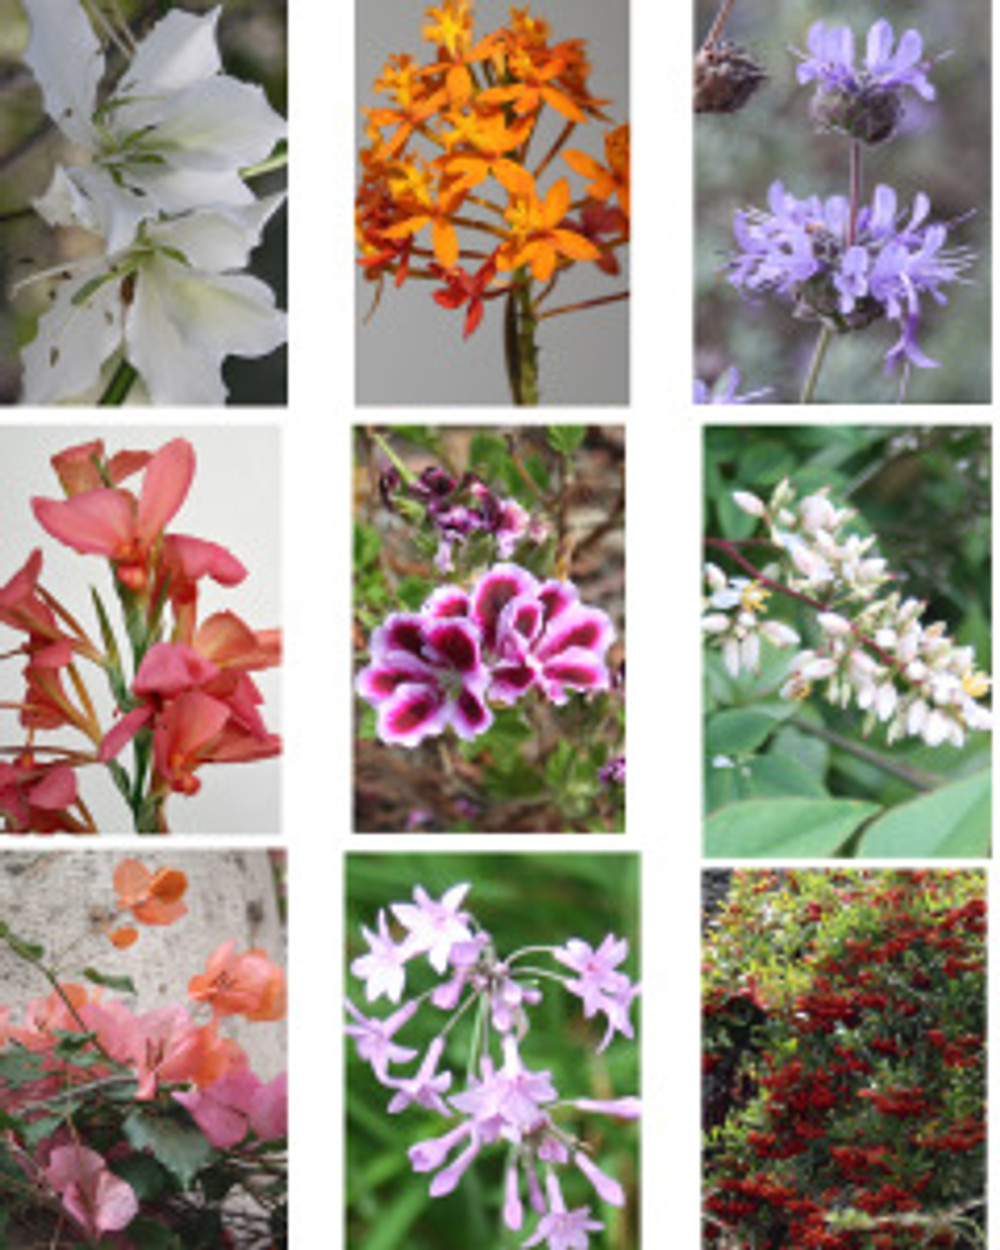 Flower images photographed by Lori Vreeke at the Santa Barbara Zoo, © 2015, all rights reserved.